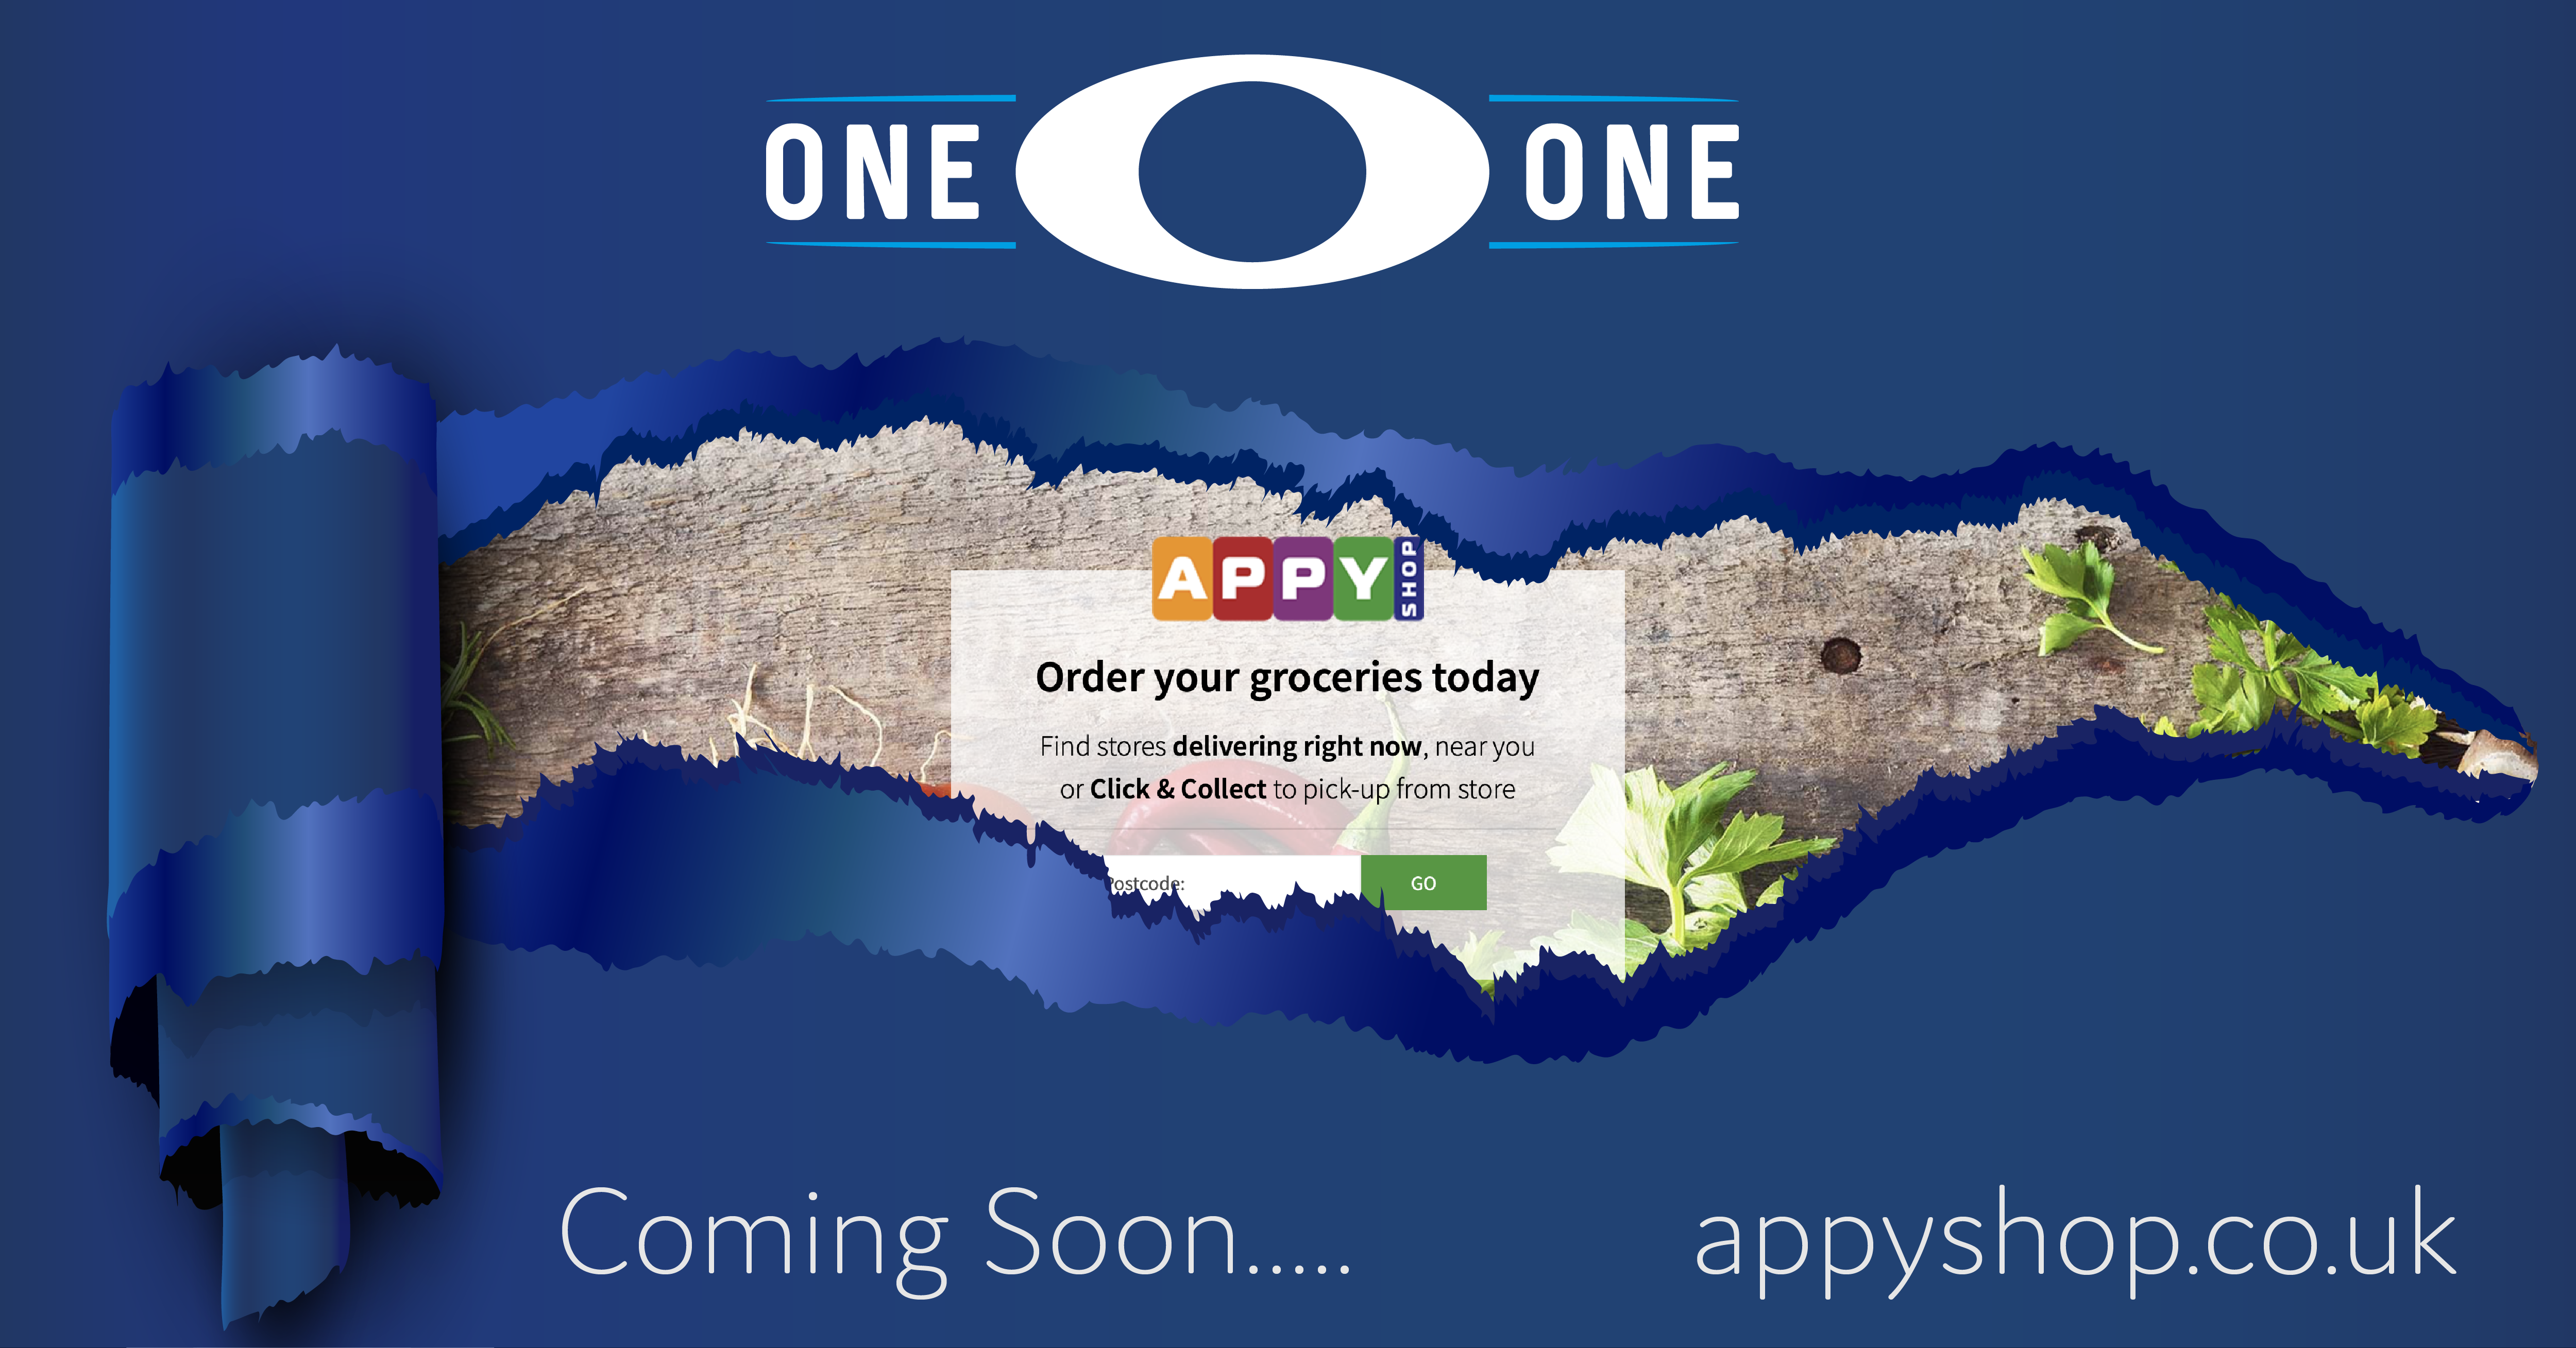 APPY Shop selected as One O One Convenience Stores' online shopping platform